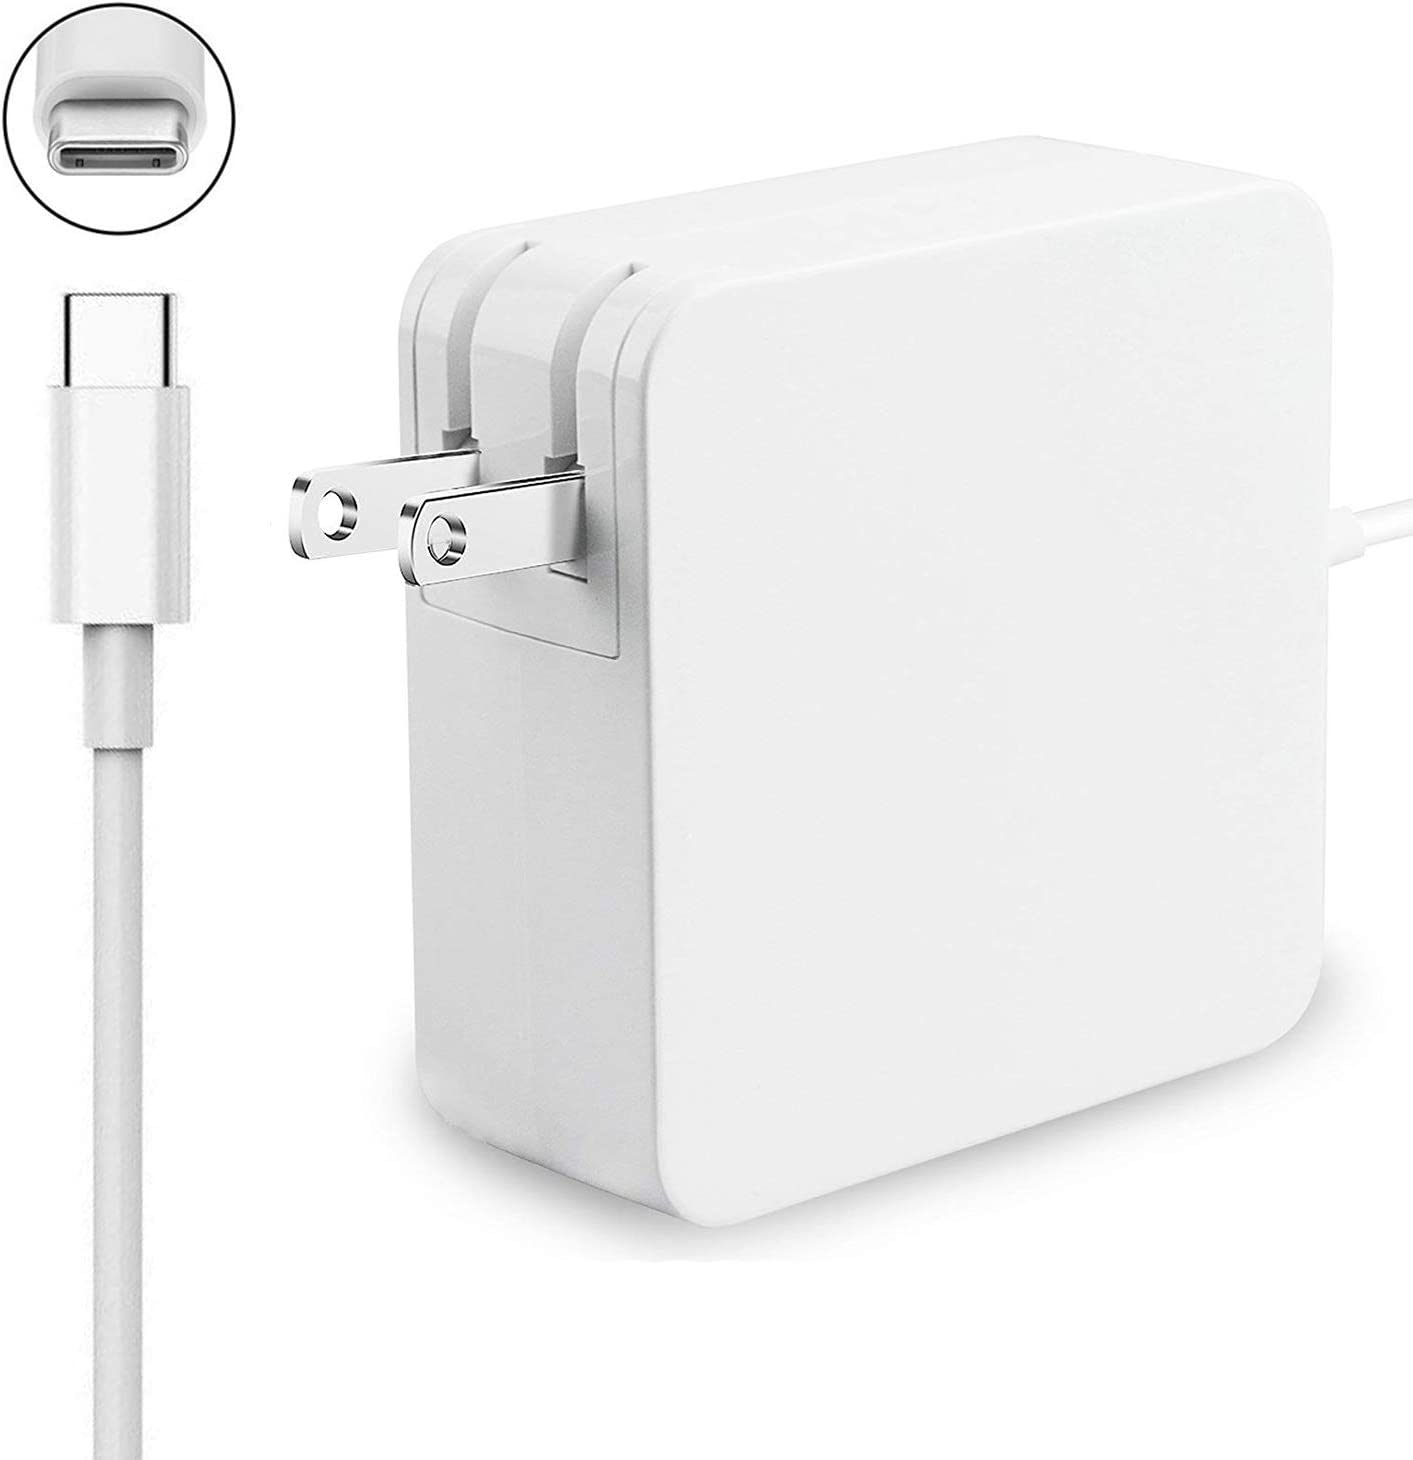 87W/90W USB-C PD Adapter Charger, Type C Power Adapter Charger (Compatible with 61W, 45W, 30W and 12W Device) for MacBook Pro Lenovo ThinkPad X1 X 270 Nintendo Switch and More Type C Laptops(White)